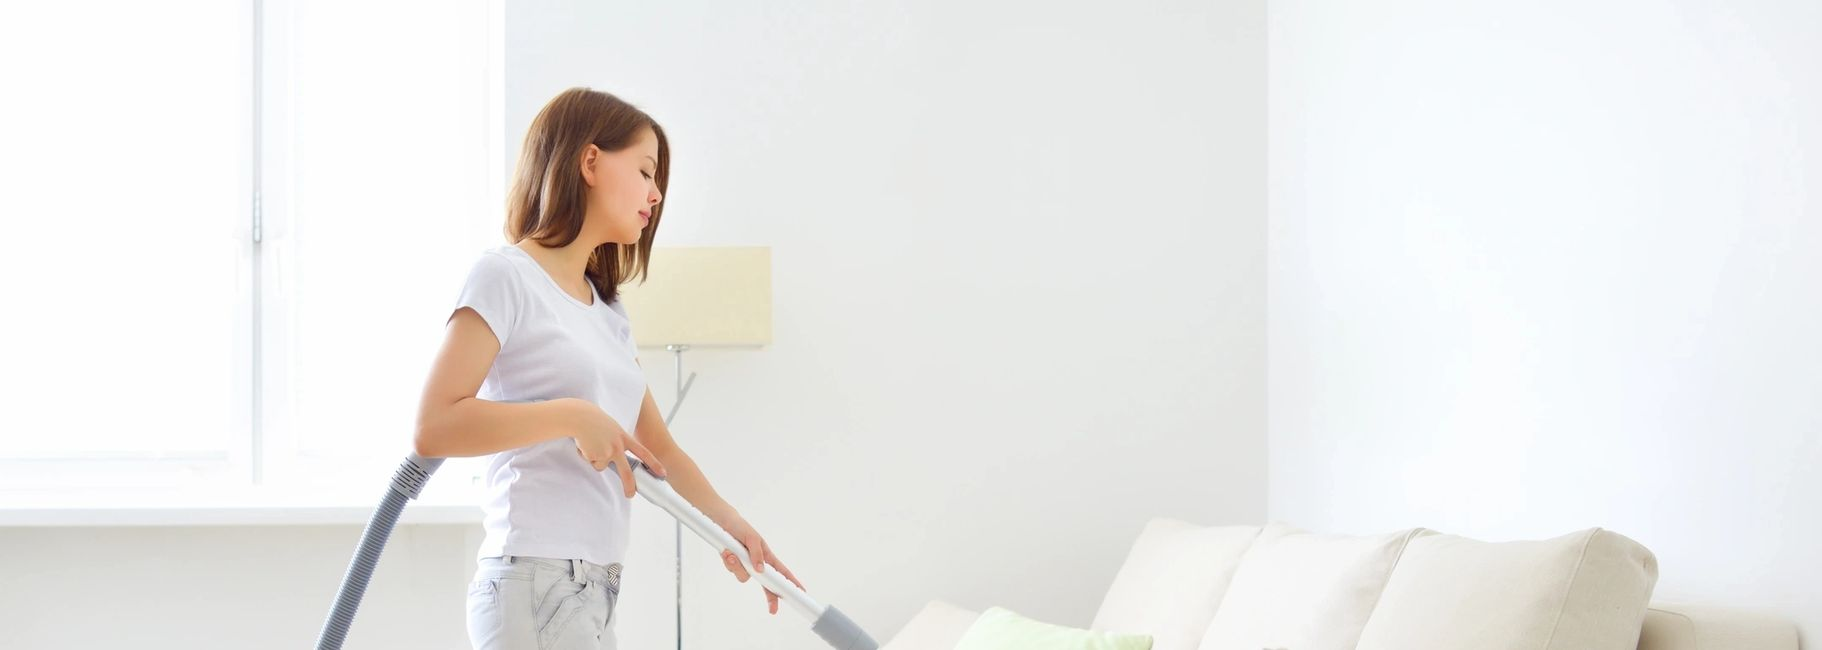 house cleaning in richmond, va